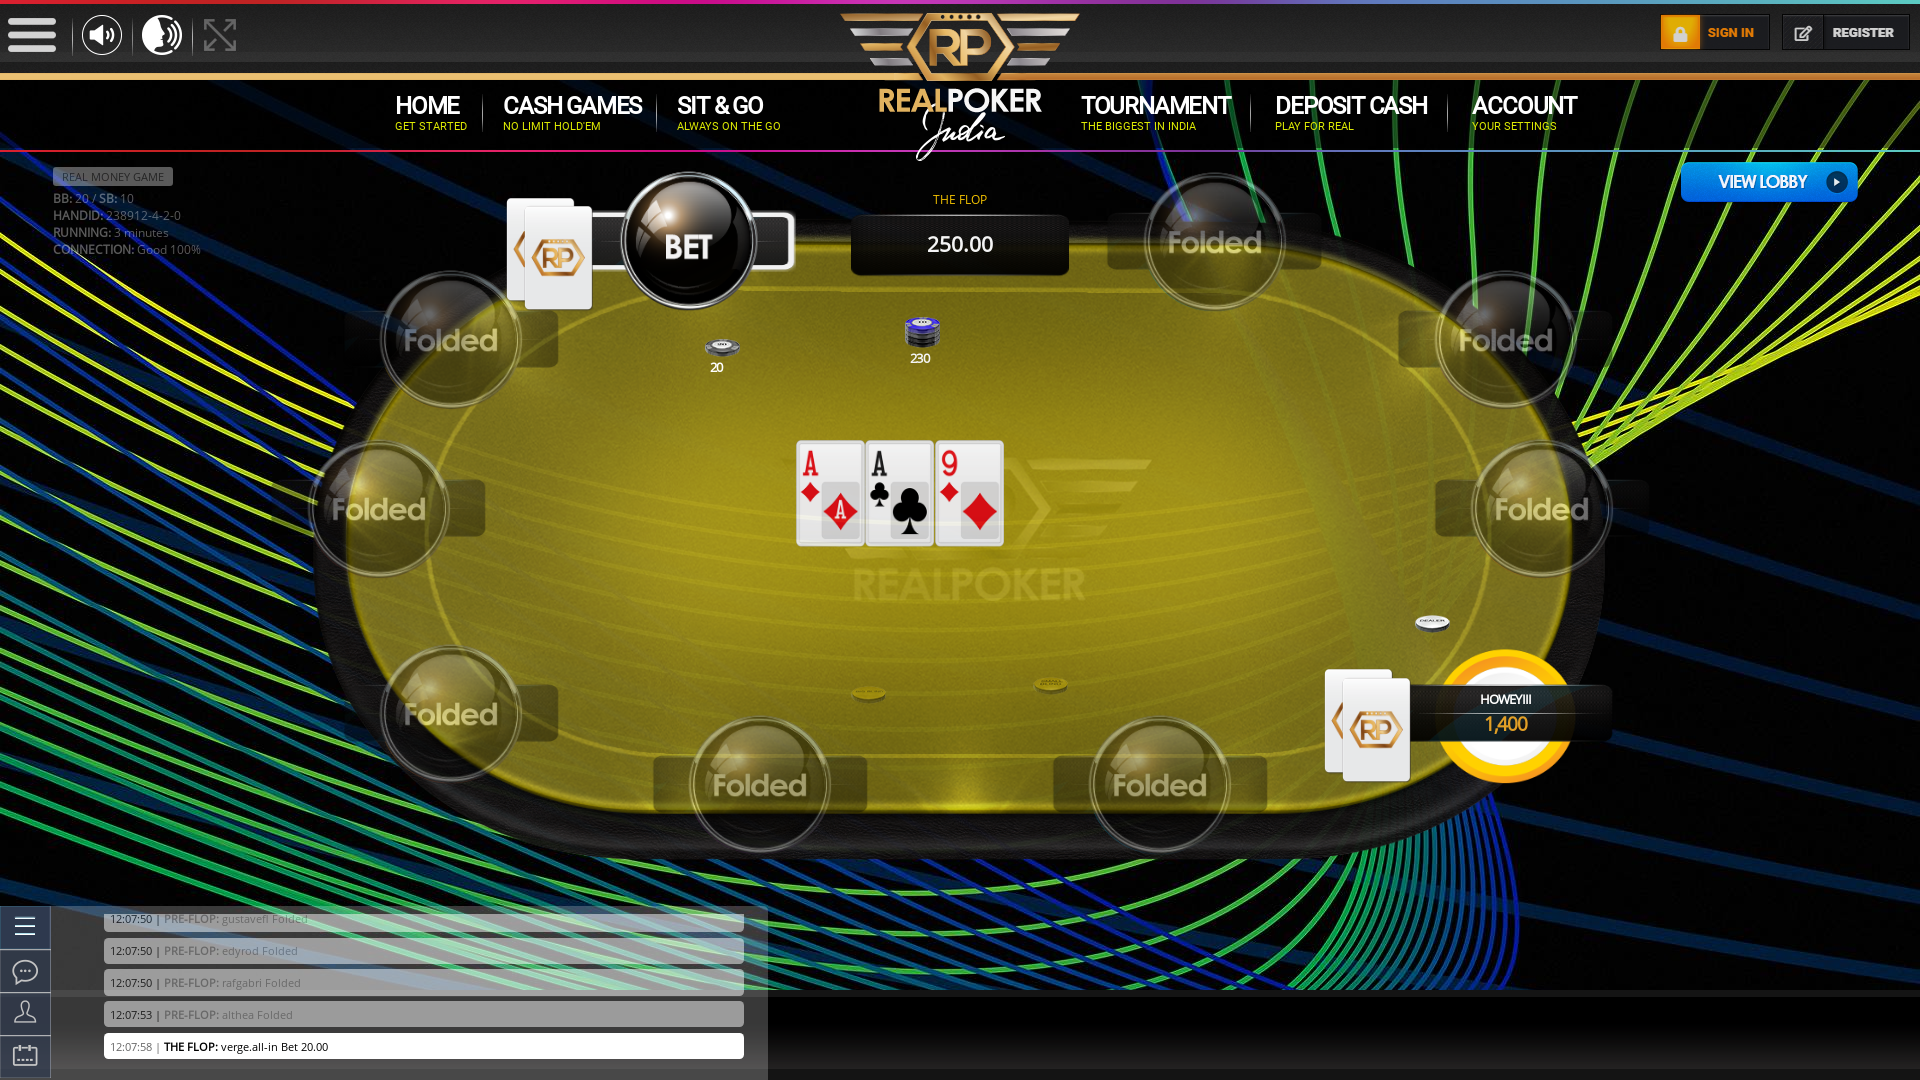 Online poker on a 10 player table in the 3rd minute match up